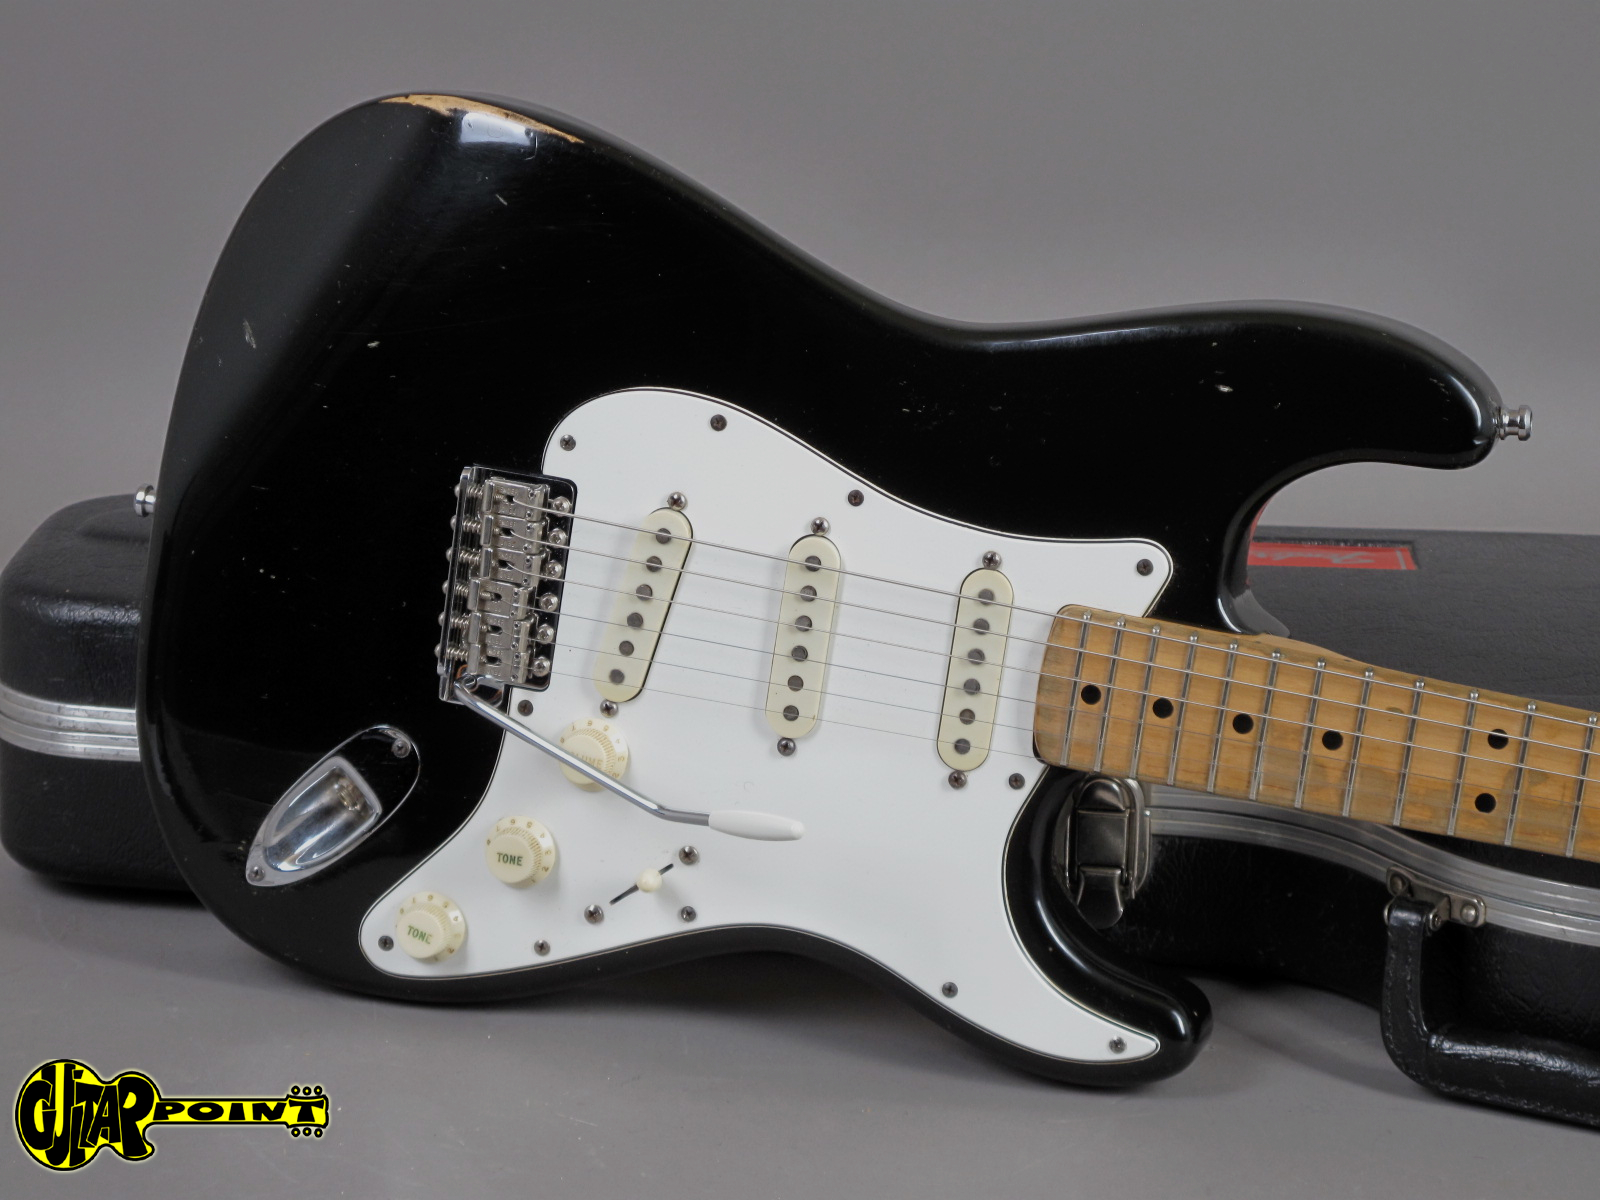 https://guitarpoint.de/app/uploads/products/1974-fender-stratocaster-black-4/Vi74FeStrBlkMN533540_20.jpg